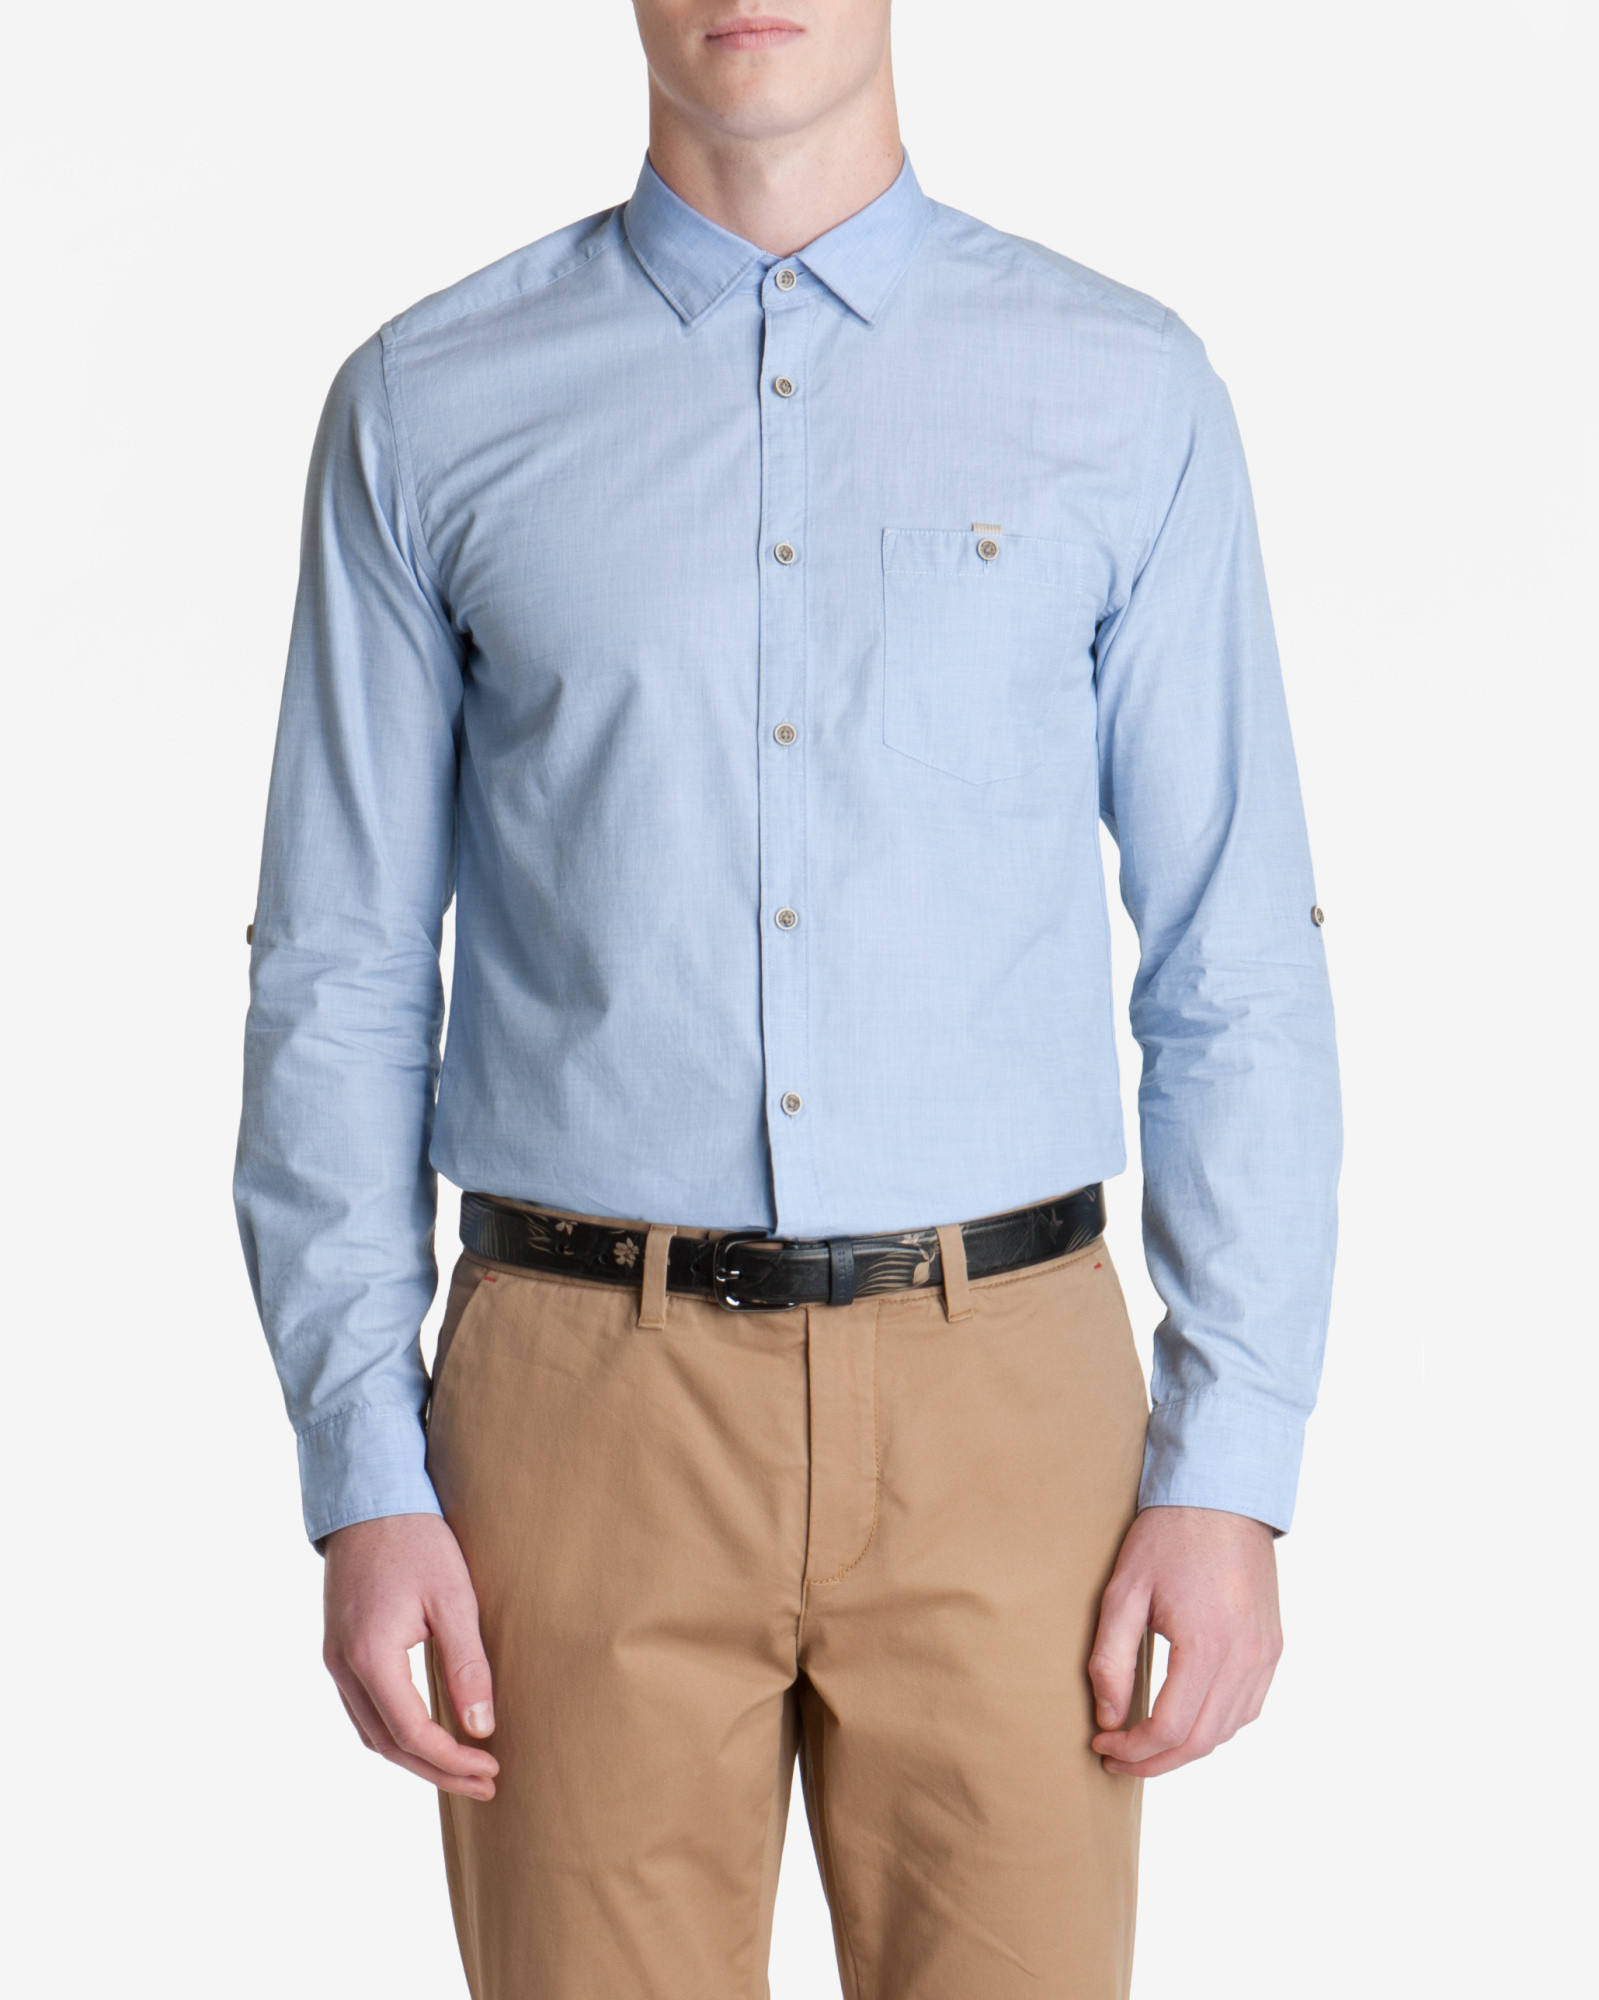 Ted baker cotton roll sleeve shirt in blue for men lyst for Ted baker blue shirt